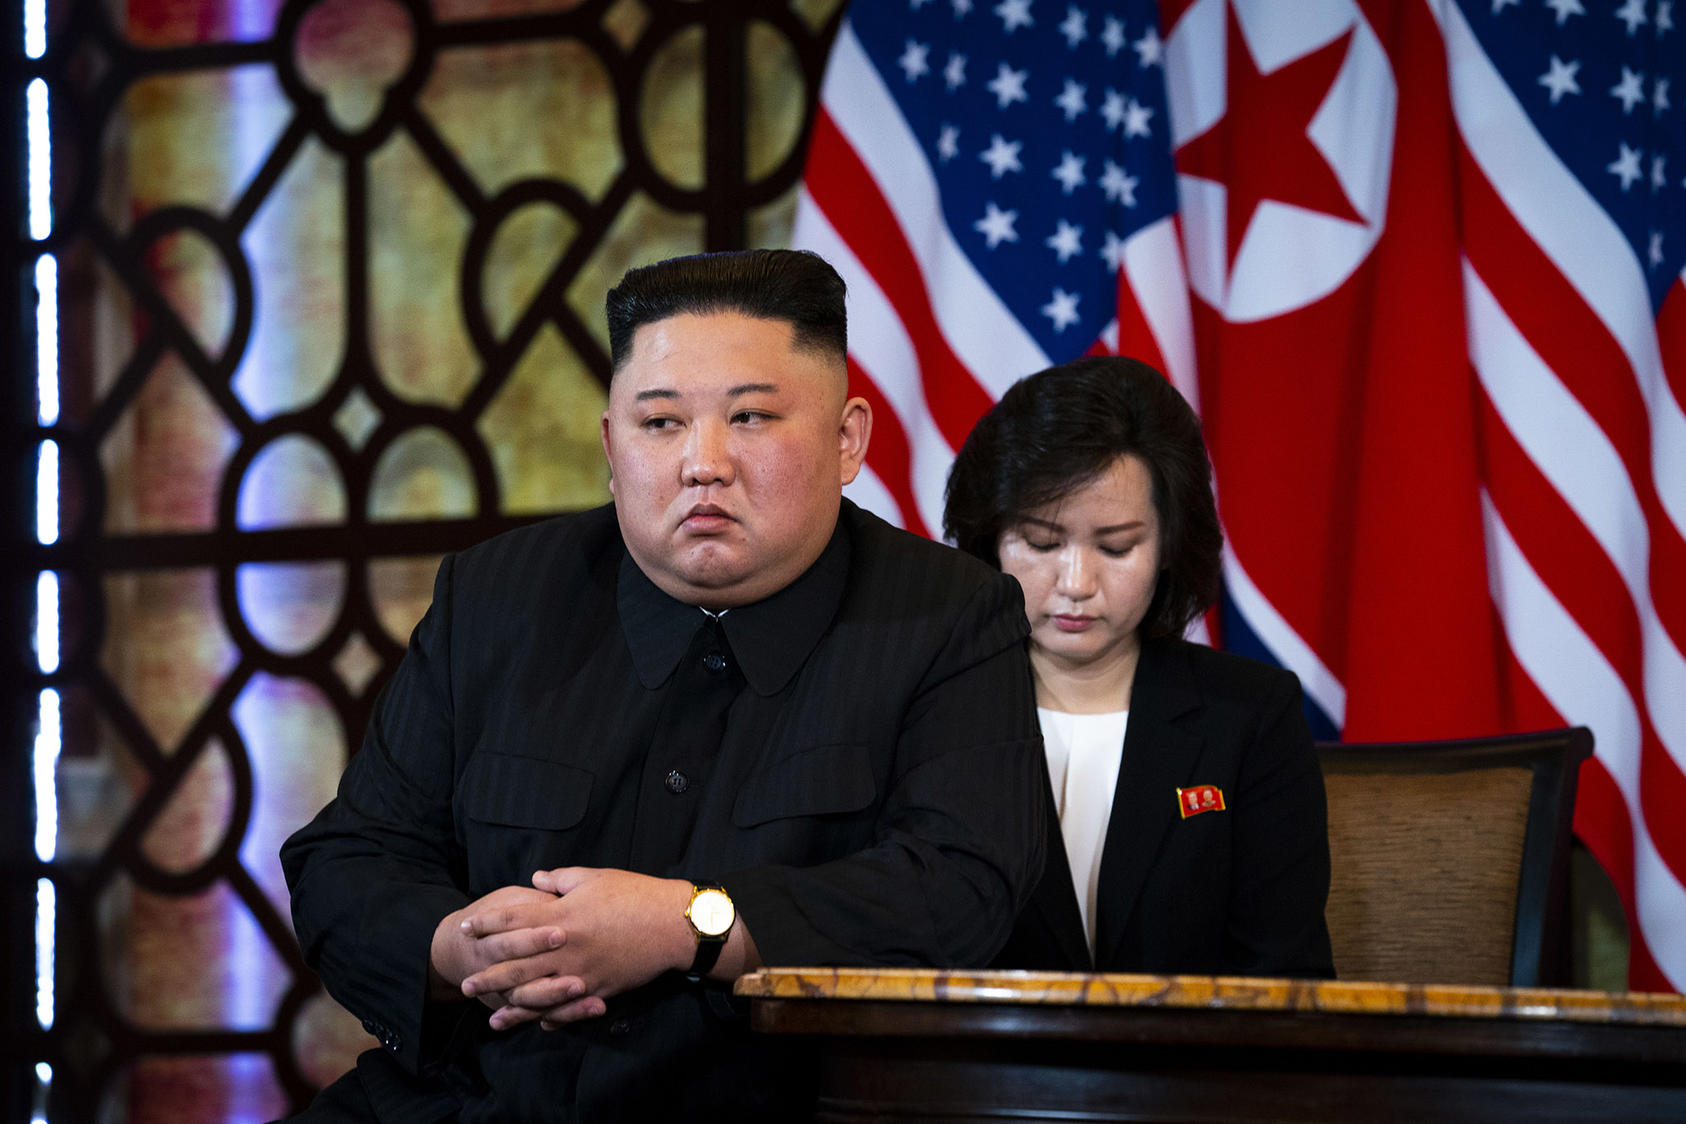 North Korean leader Kim Jong-un during a meeting with President Donald Trump in Hanoi, Vietnam, Feb. 28, 2019 (Doug Mills/The New York Times)